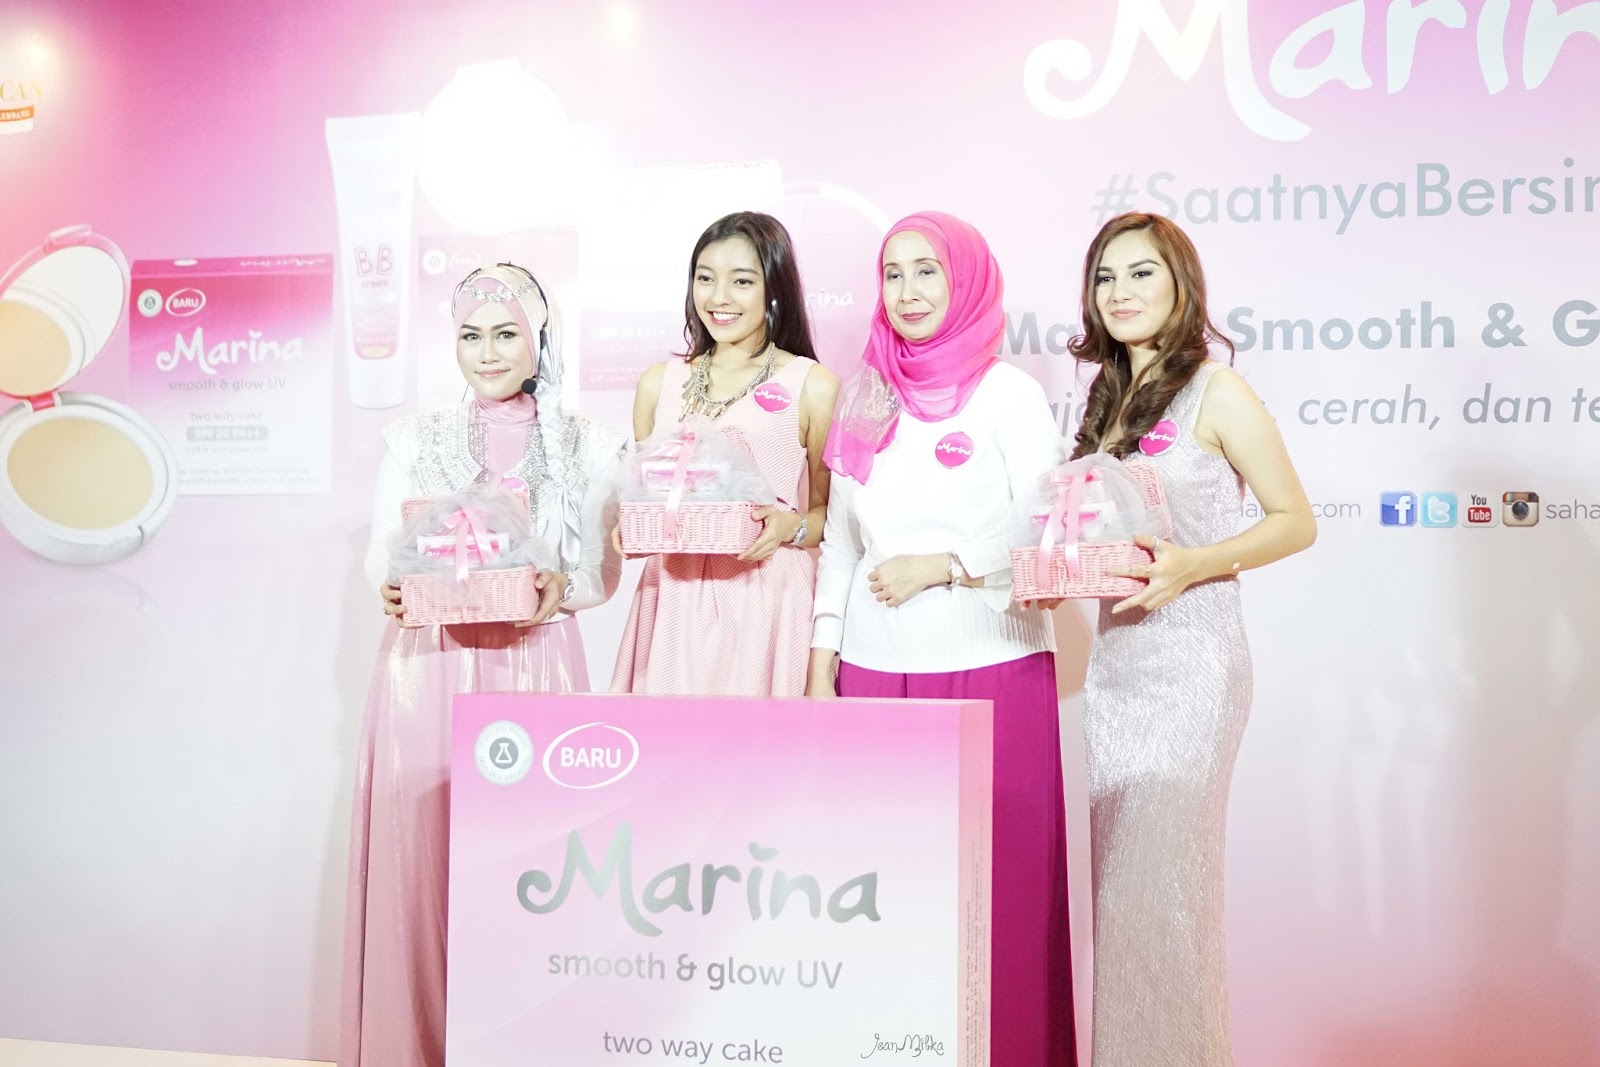 review, marina, marina smooth and glow, bb cream, two way cake, powdery foundation, compact powder, drugstore, makeup, makeup murah, smooth and glow uv, saatnya bersinar